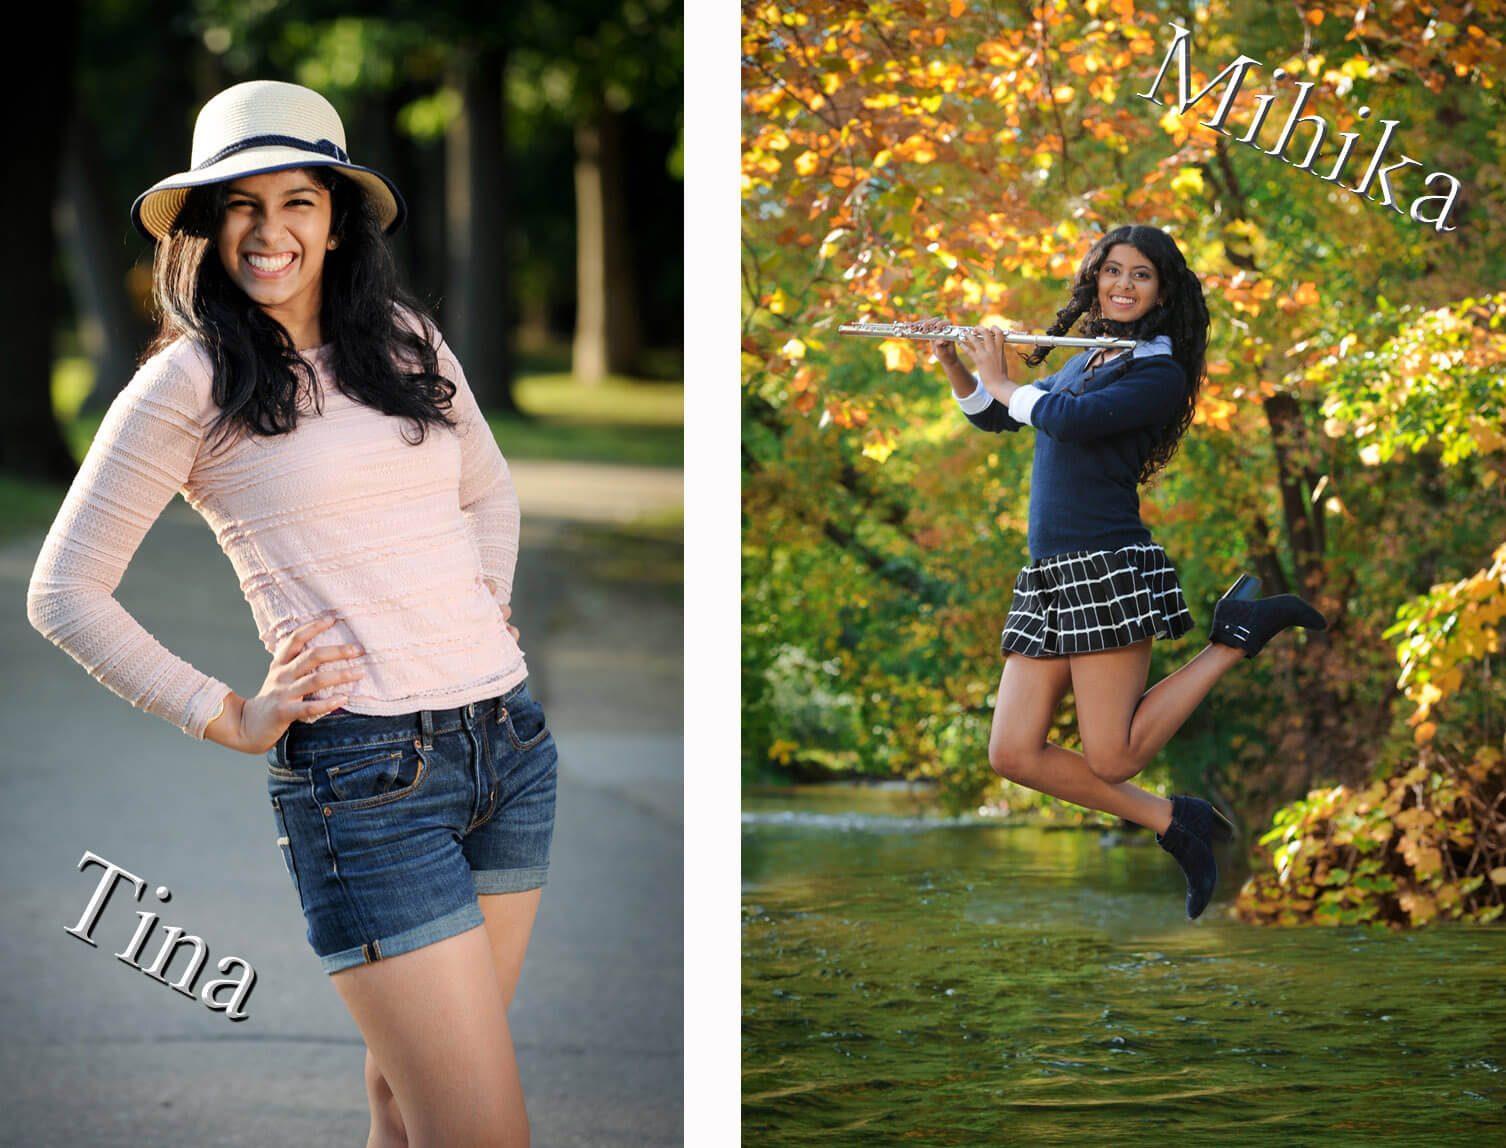 Two Troy, Michigan seniors show off their fun personalities for their senior photos in the Metro Detroit, Michigan area out in nature.